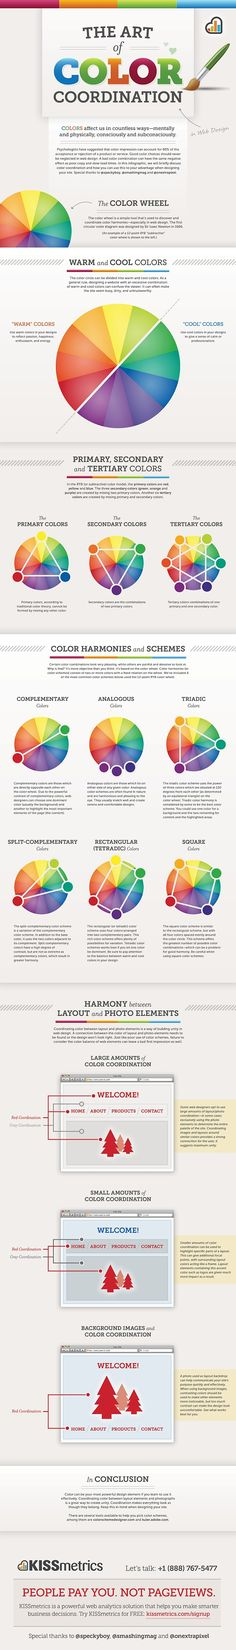 Psychologies have suggested that color impression can account for 60% of the acceptance or rejection of a product or service. Use color to your advantage in Web design.